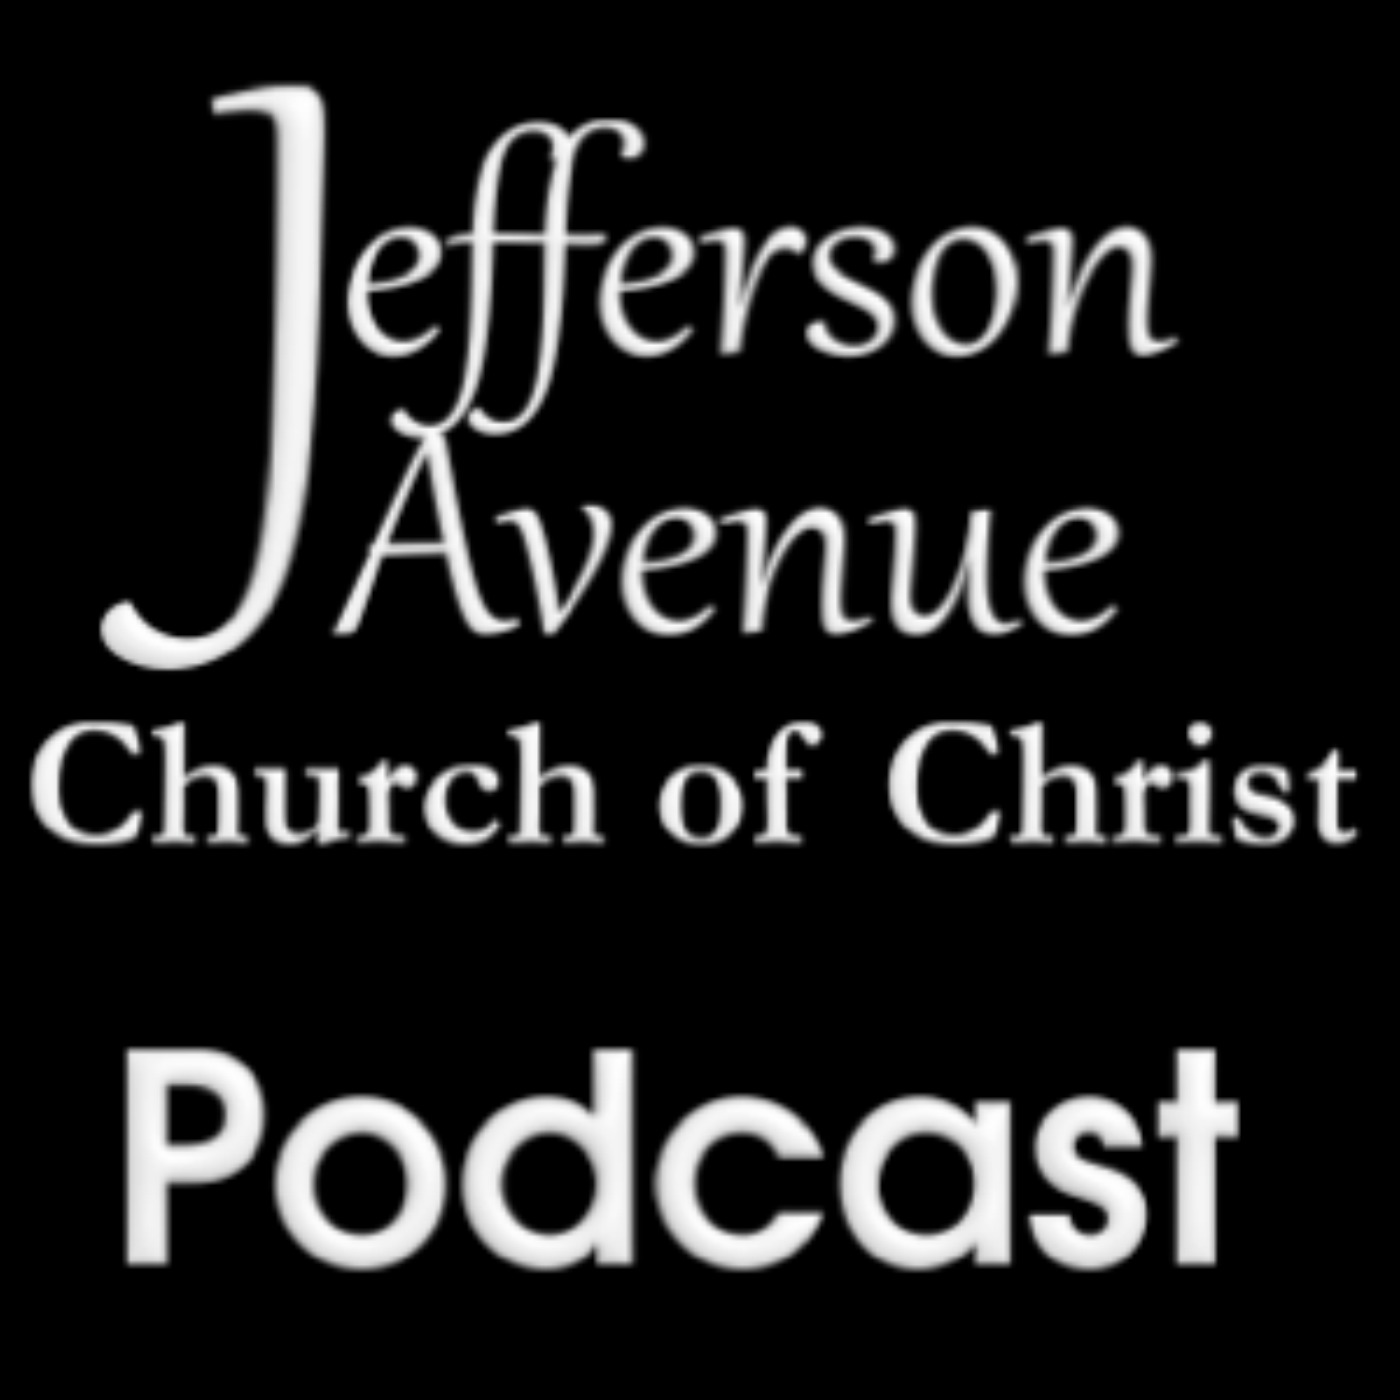 Sermons - Jefferson Avenue Church of Christ